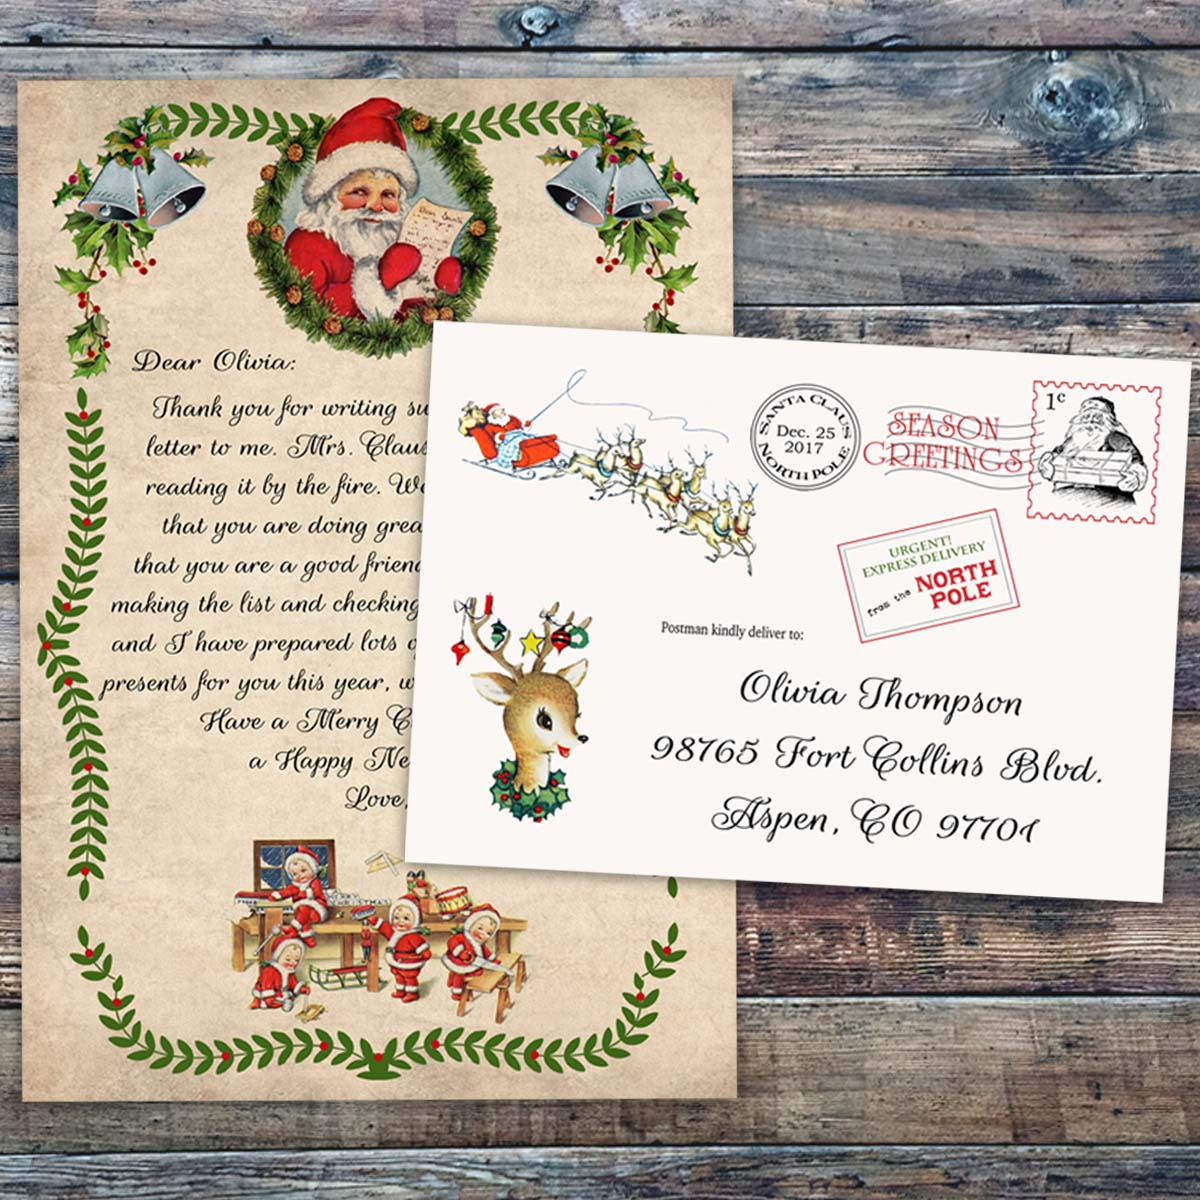 official pole mail personalized letters from santa custom letter from santa claus pole mail 875